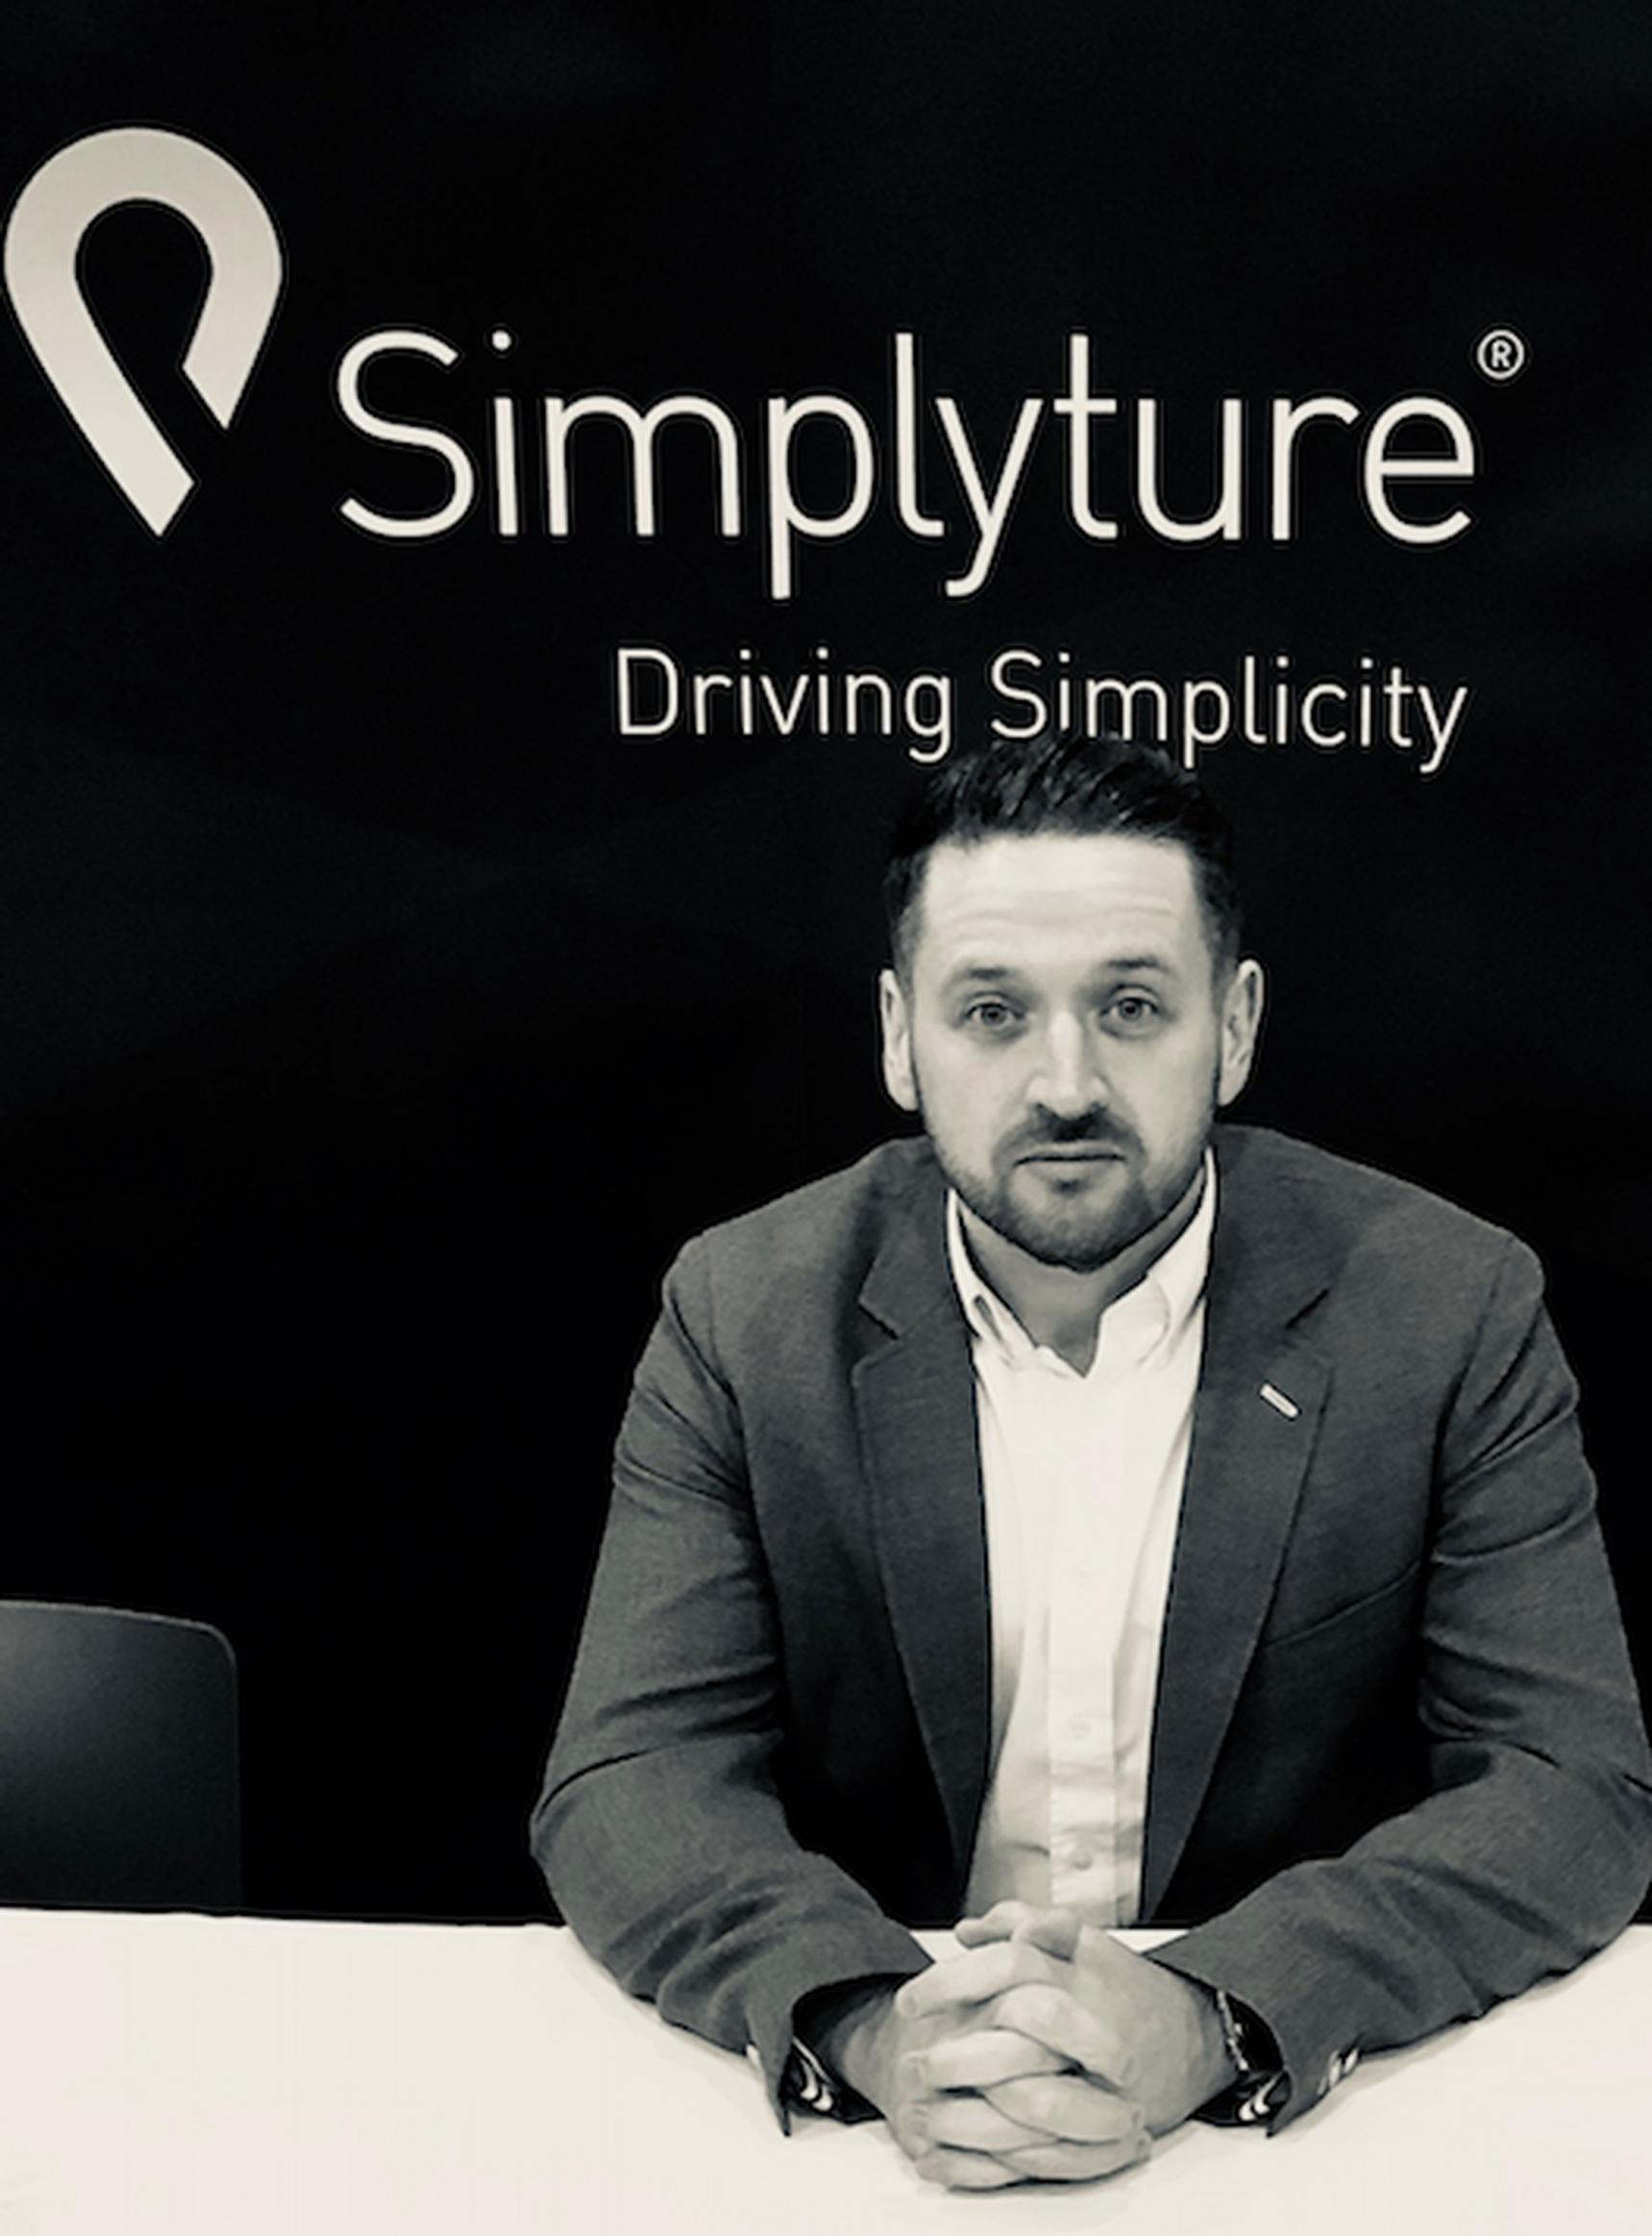 Simplyture enters UK parking market